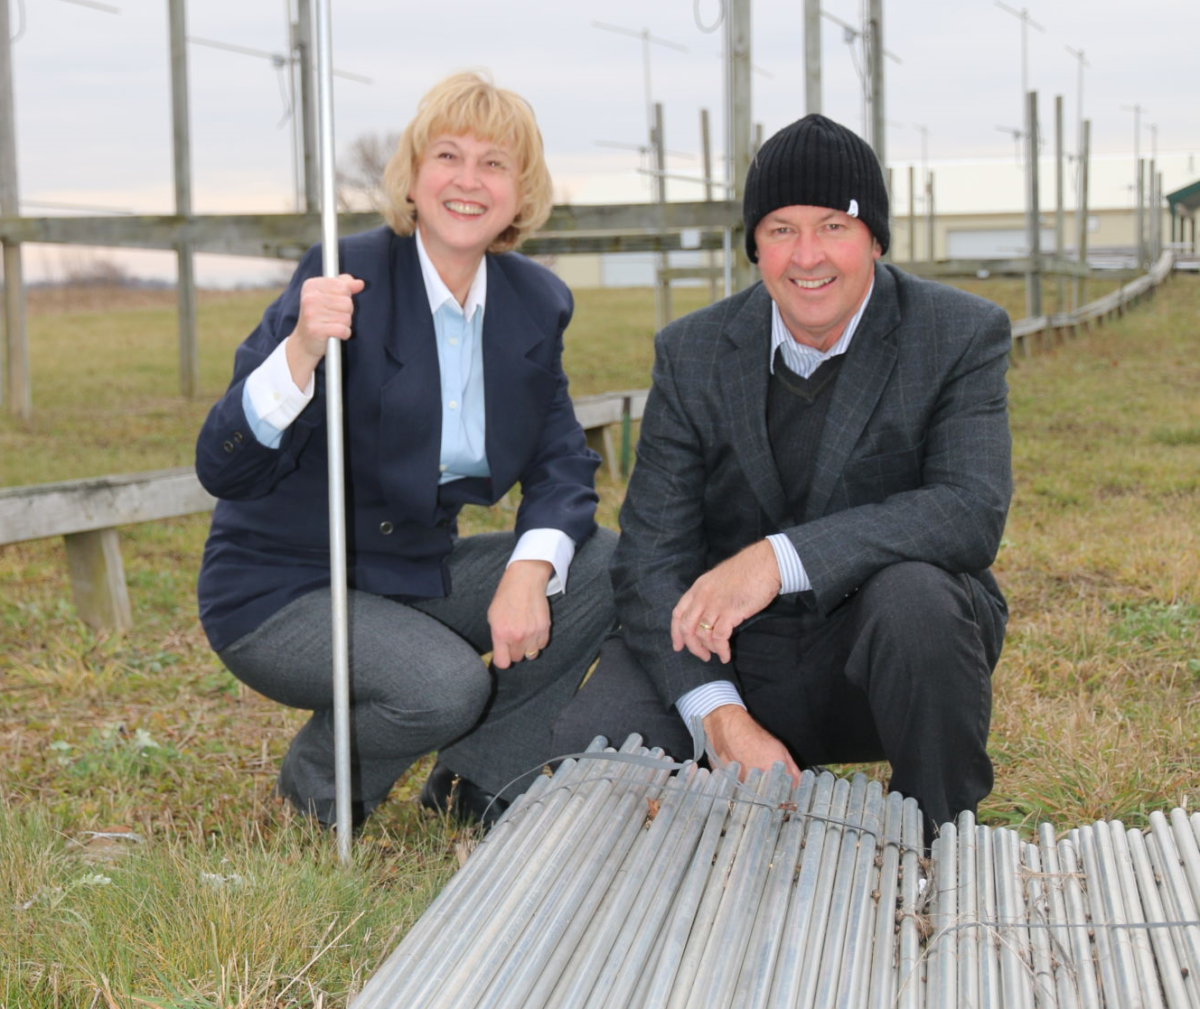 Pictured here with antenna elements at the radar array north of London: researchers Anna Hocking, a Western University alumna and PhD, and Prof. Wayne Hocking, who leads the Atmospheric Dynamics Group based at Western's Department of Physics and Astronomy.